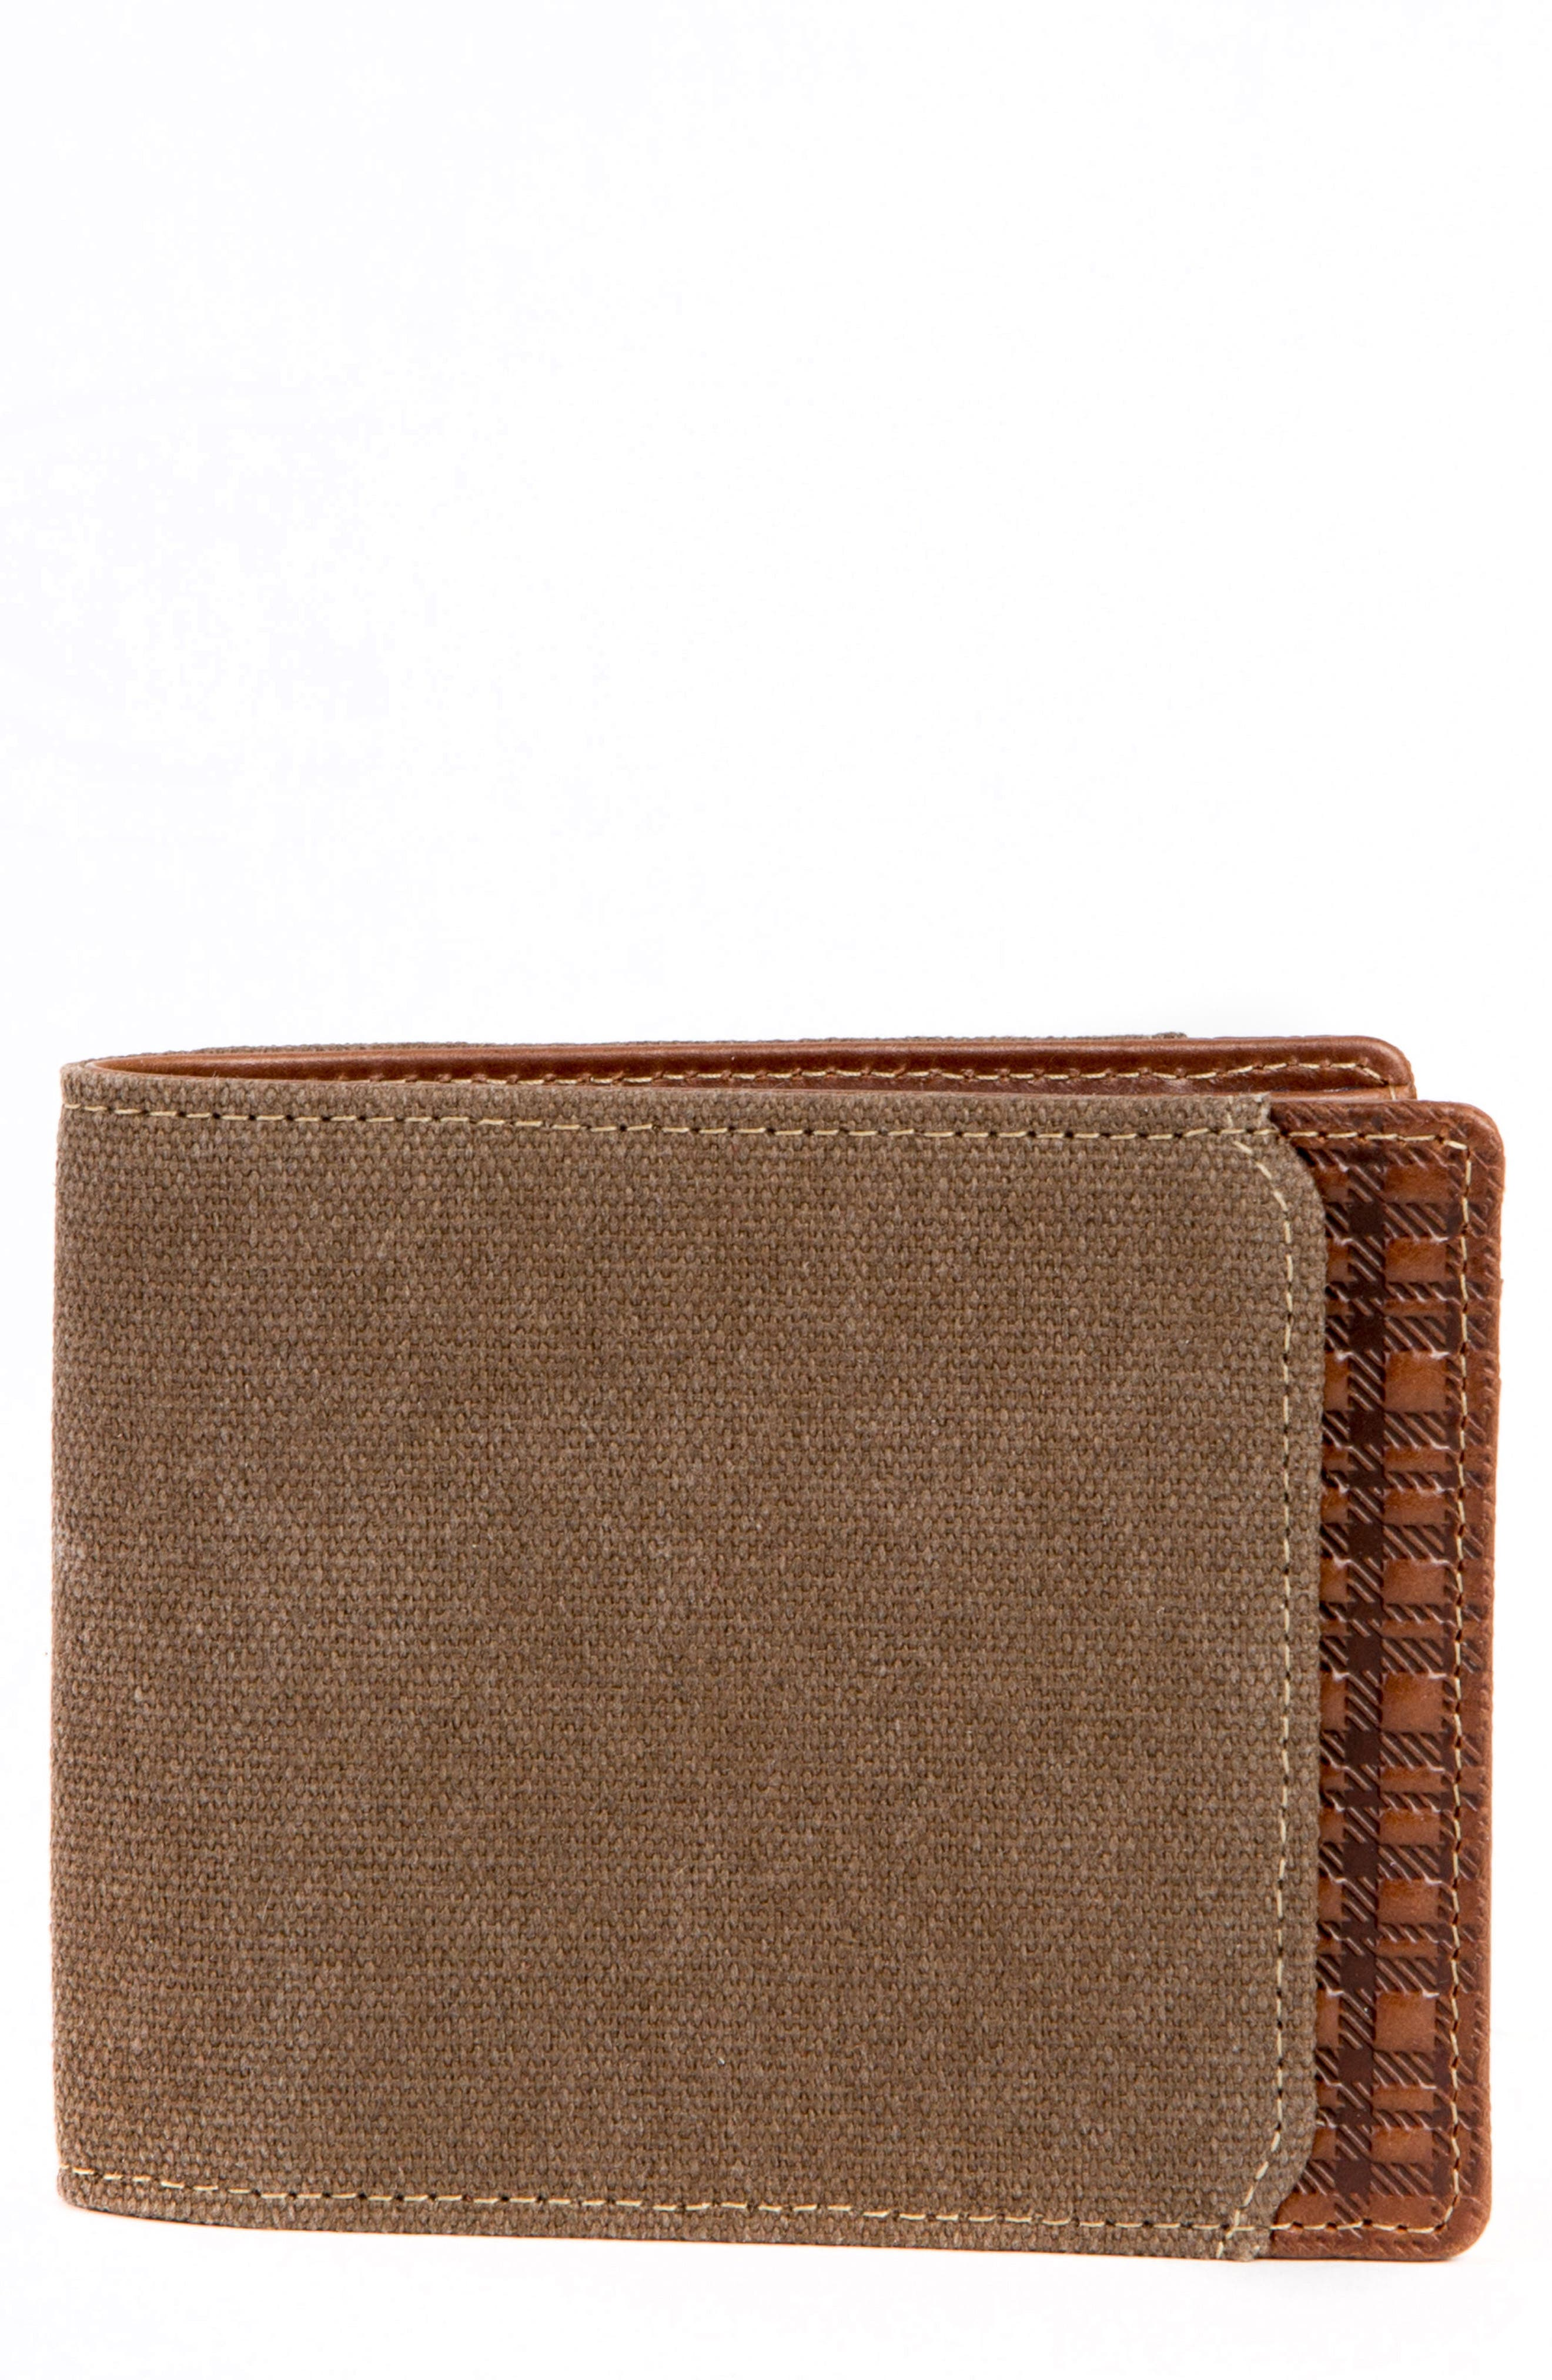 Bryant LTE Wallet,                         Main,                         color, MAHOGANY/ HEATHER